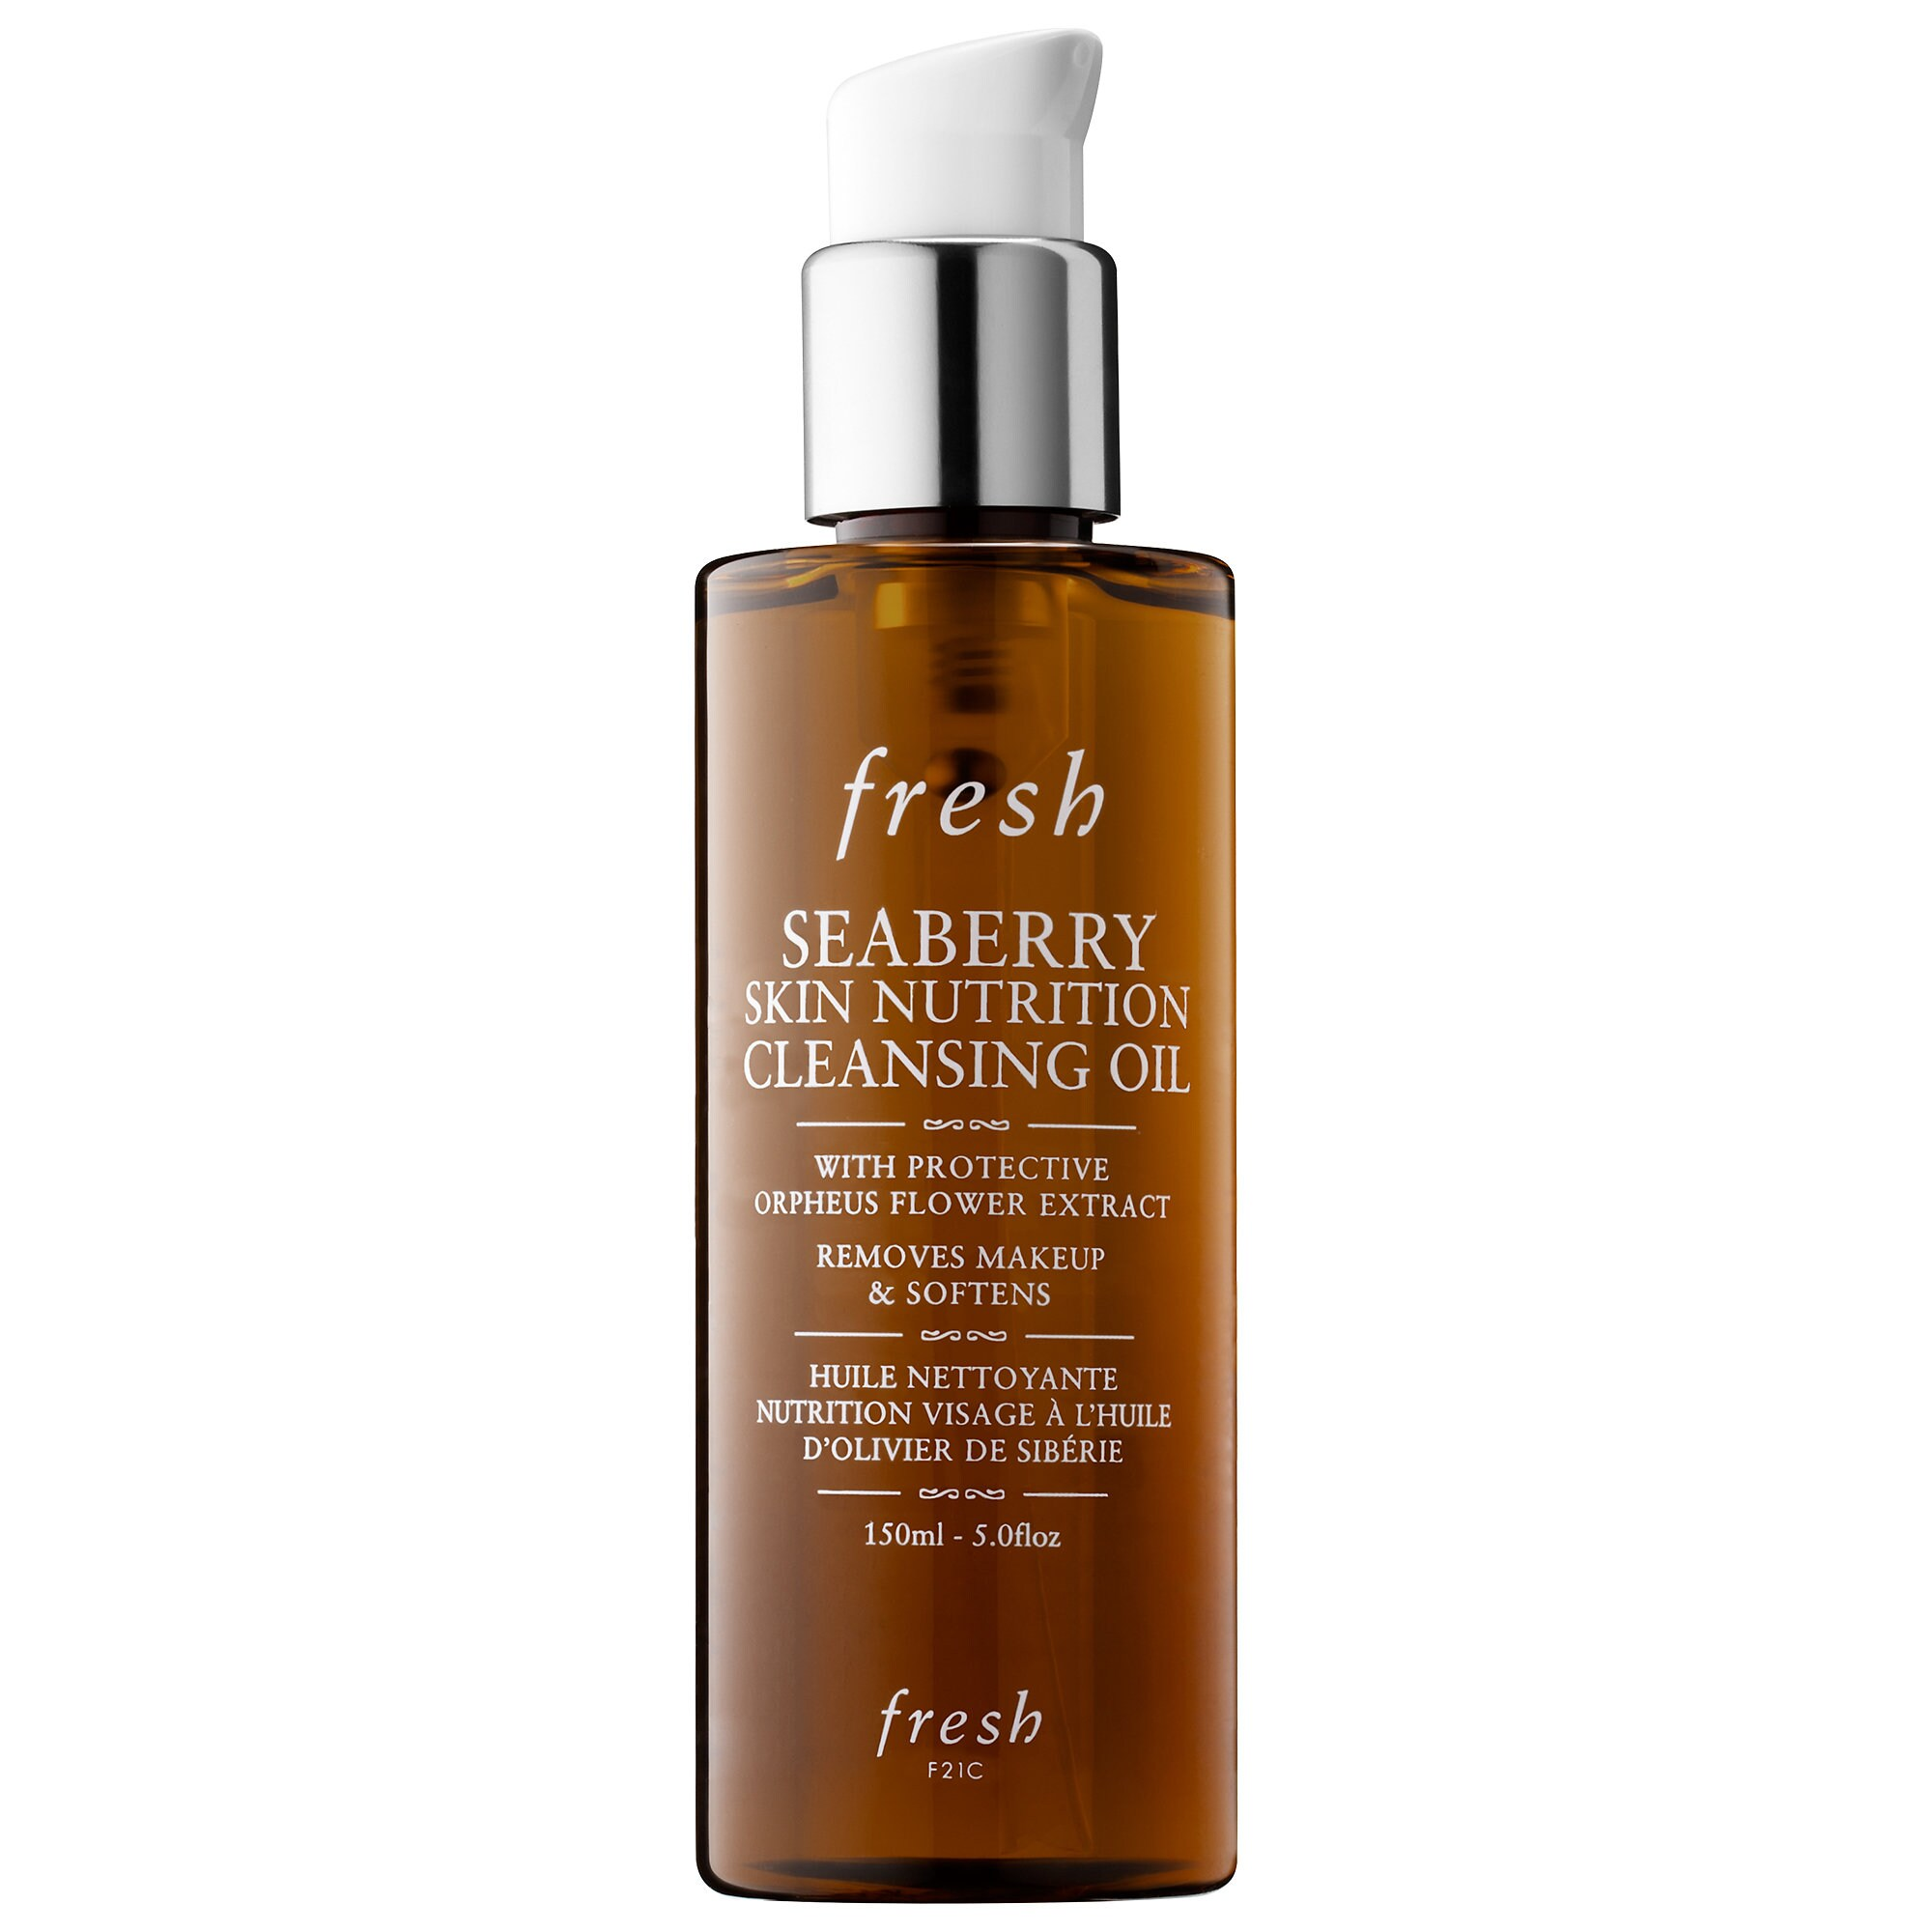 Fresh - Seaberry Skin Nutrition Cleansing Oil